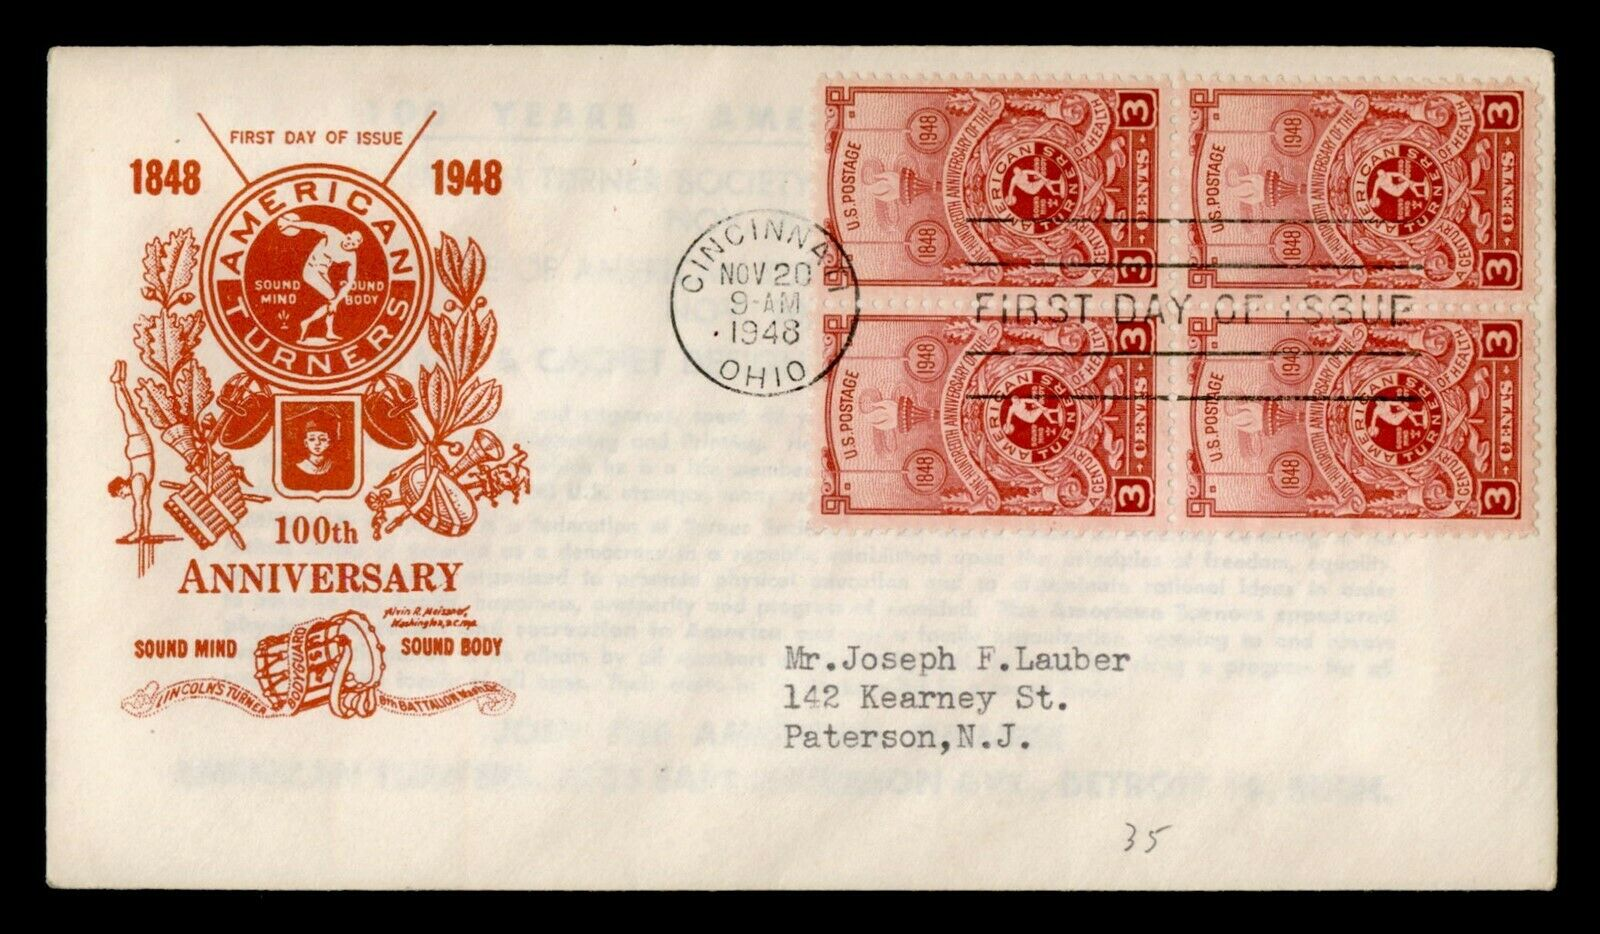 DR WHO 1948 AMERICAN TURNERS CENTENNIAL BLOCK FDC C211908 - $0.50